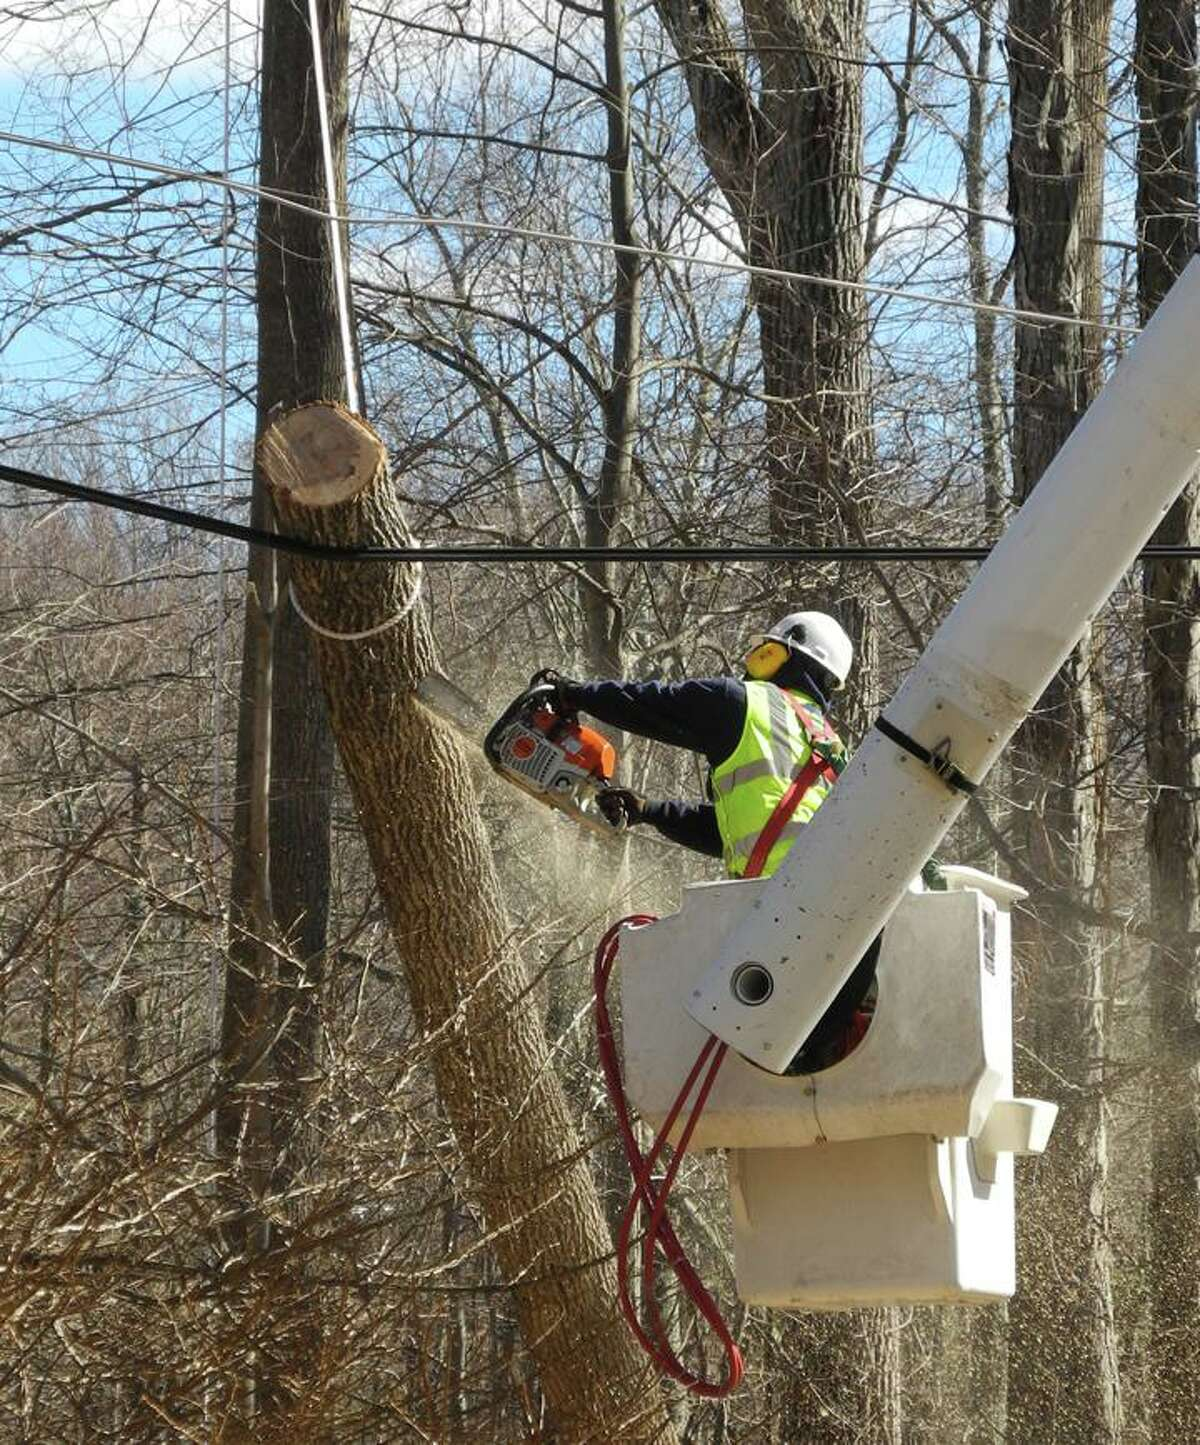 A worker sawed a tree limb that had fallen on a wire after a big storm in February, 2016.